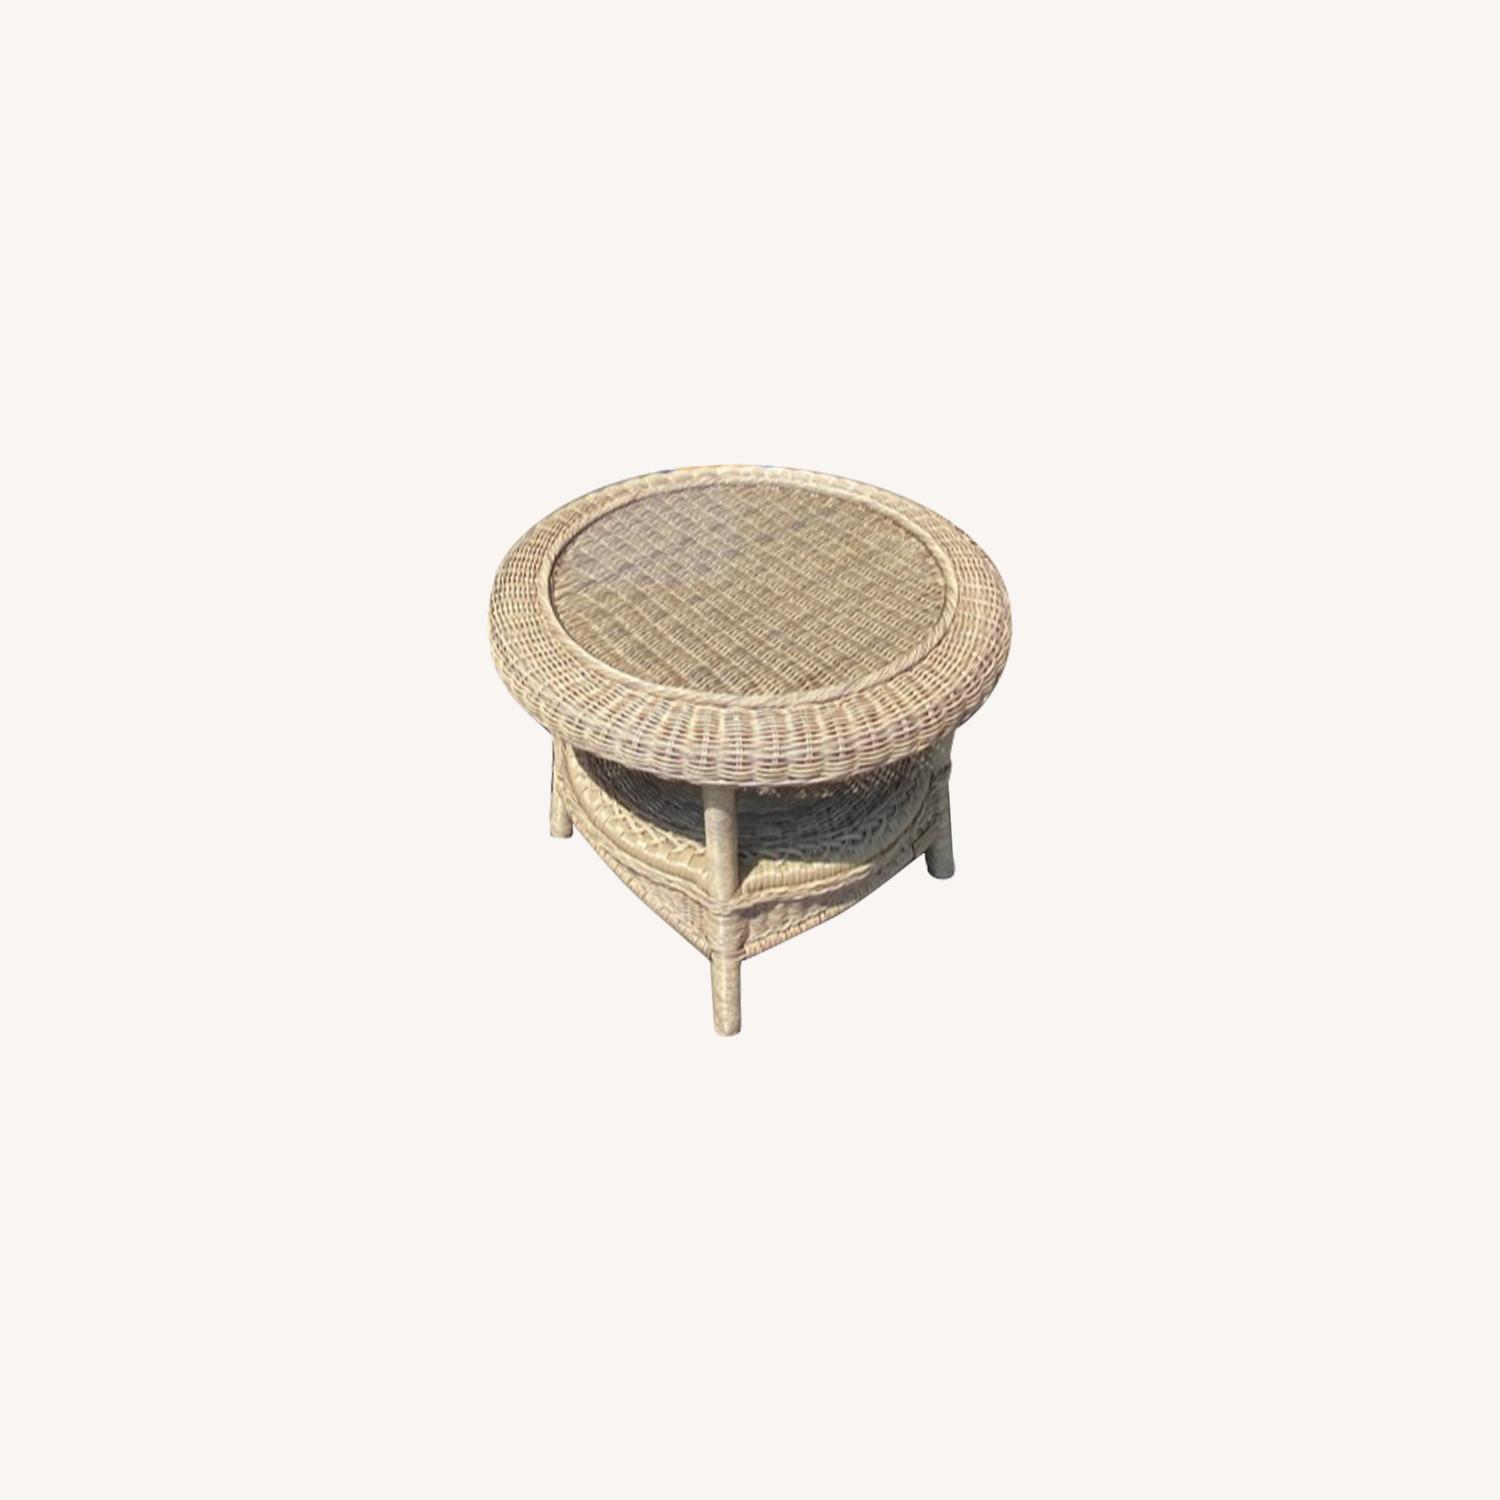 Restoration Hardware Wicker Bistro Table - image-0